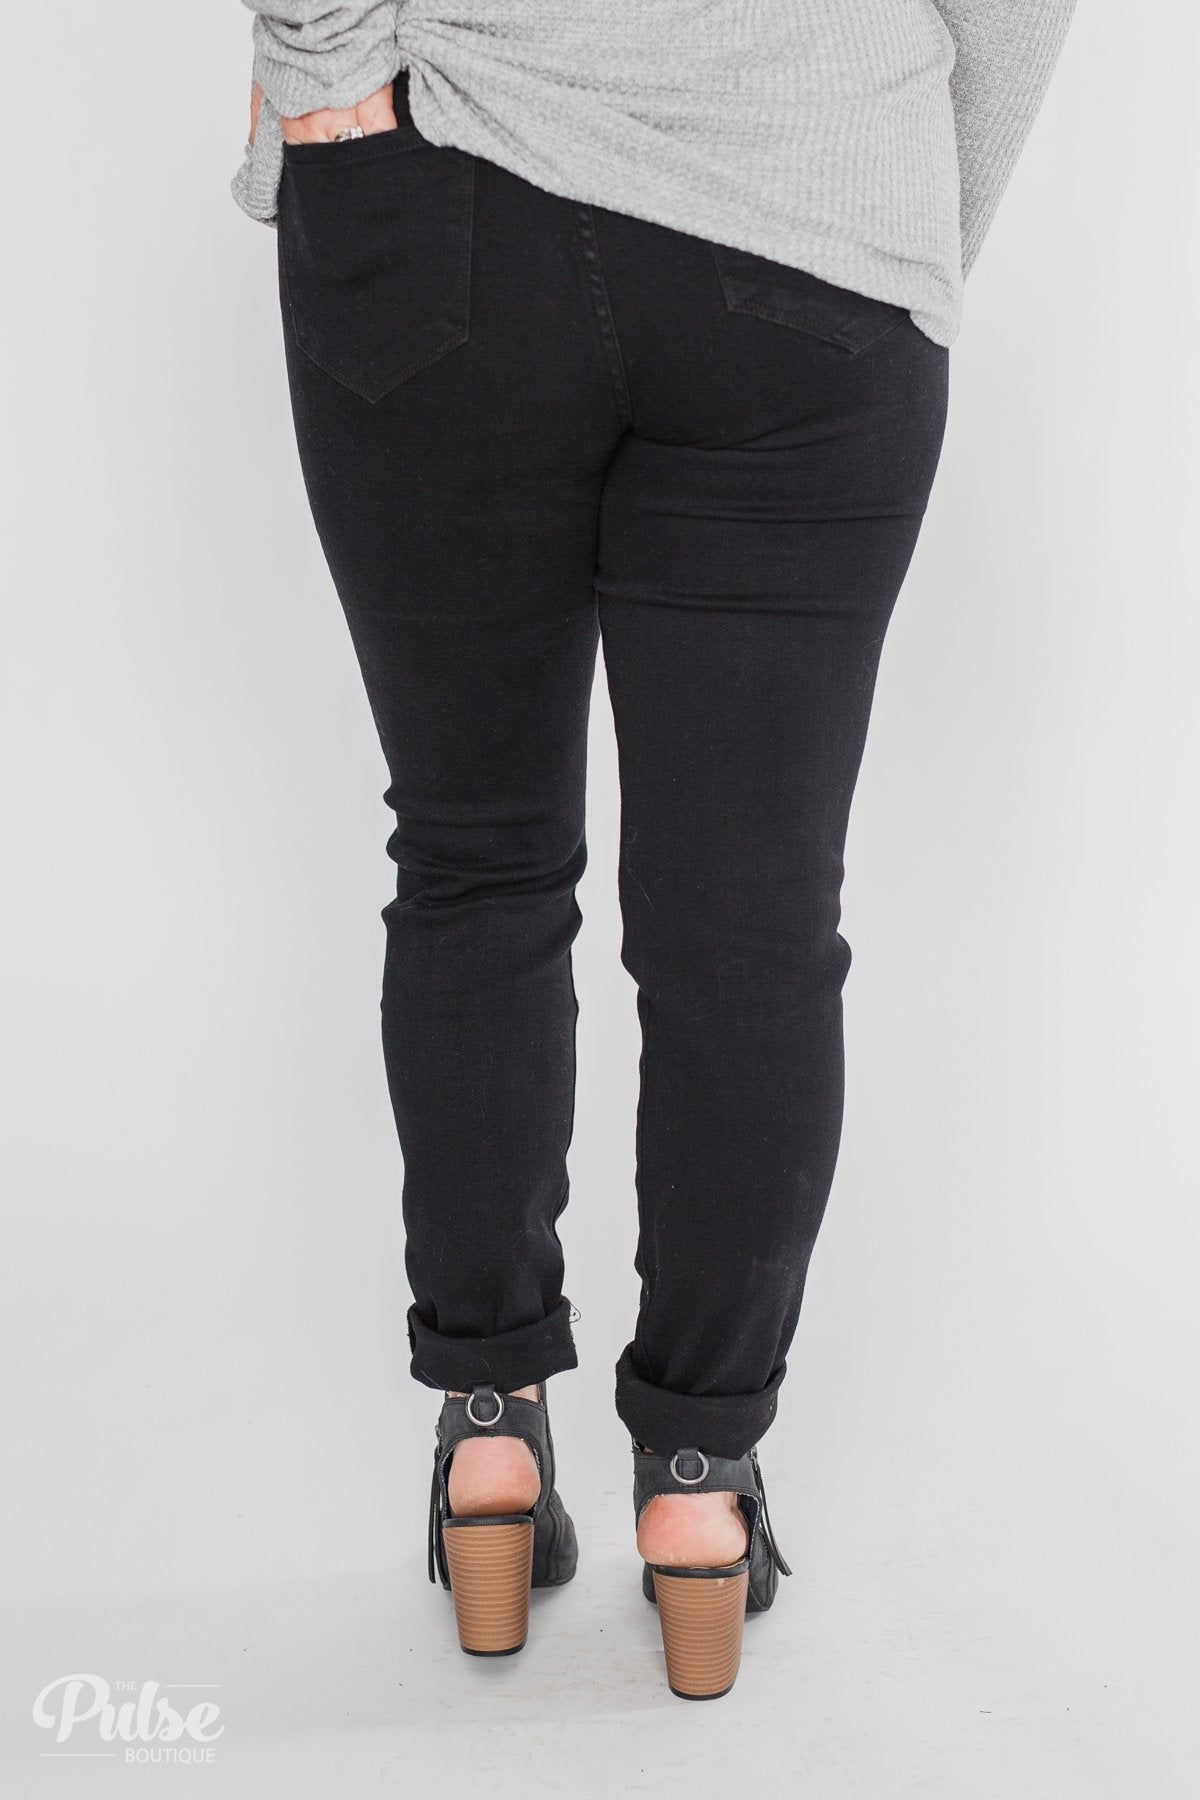 Kan Can Rylee Jeans - Black Distressed